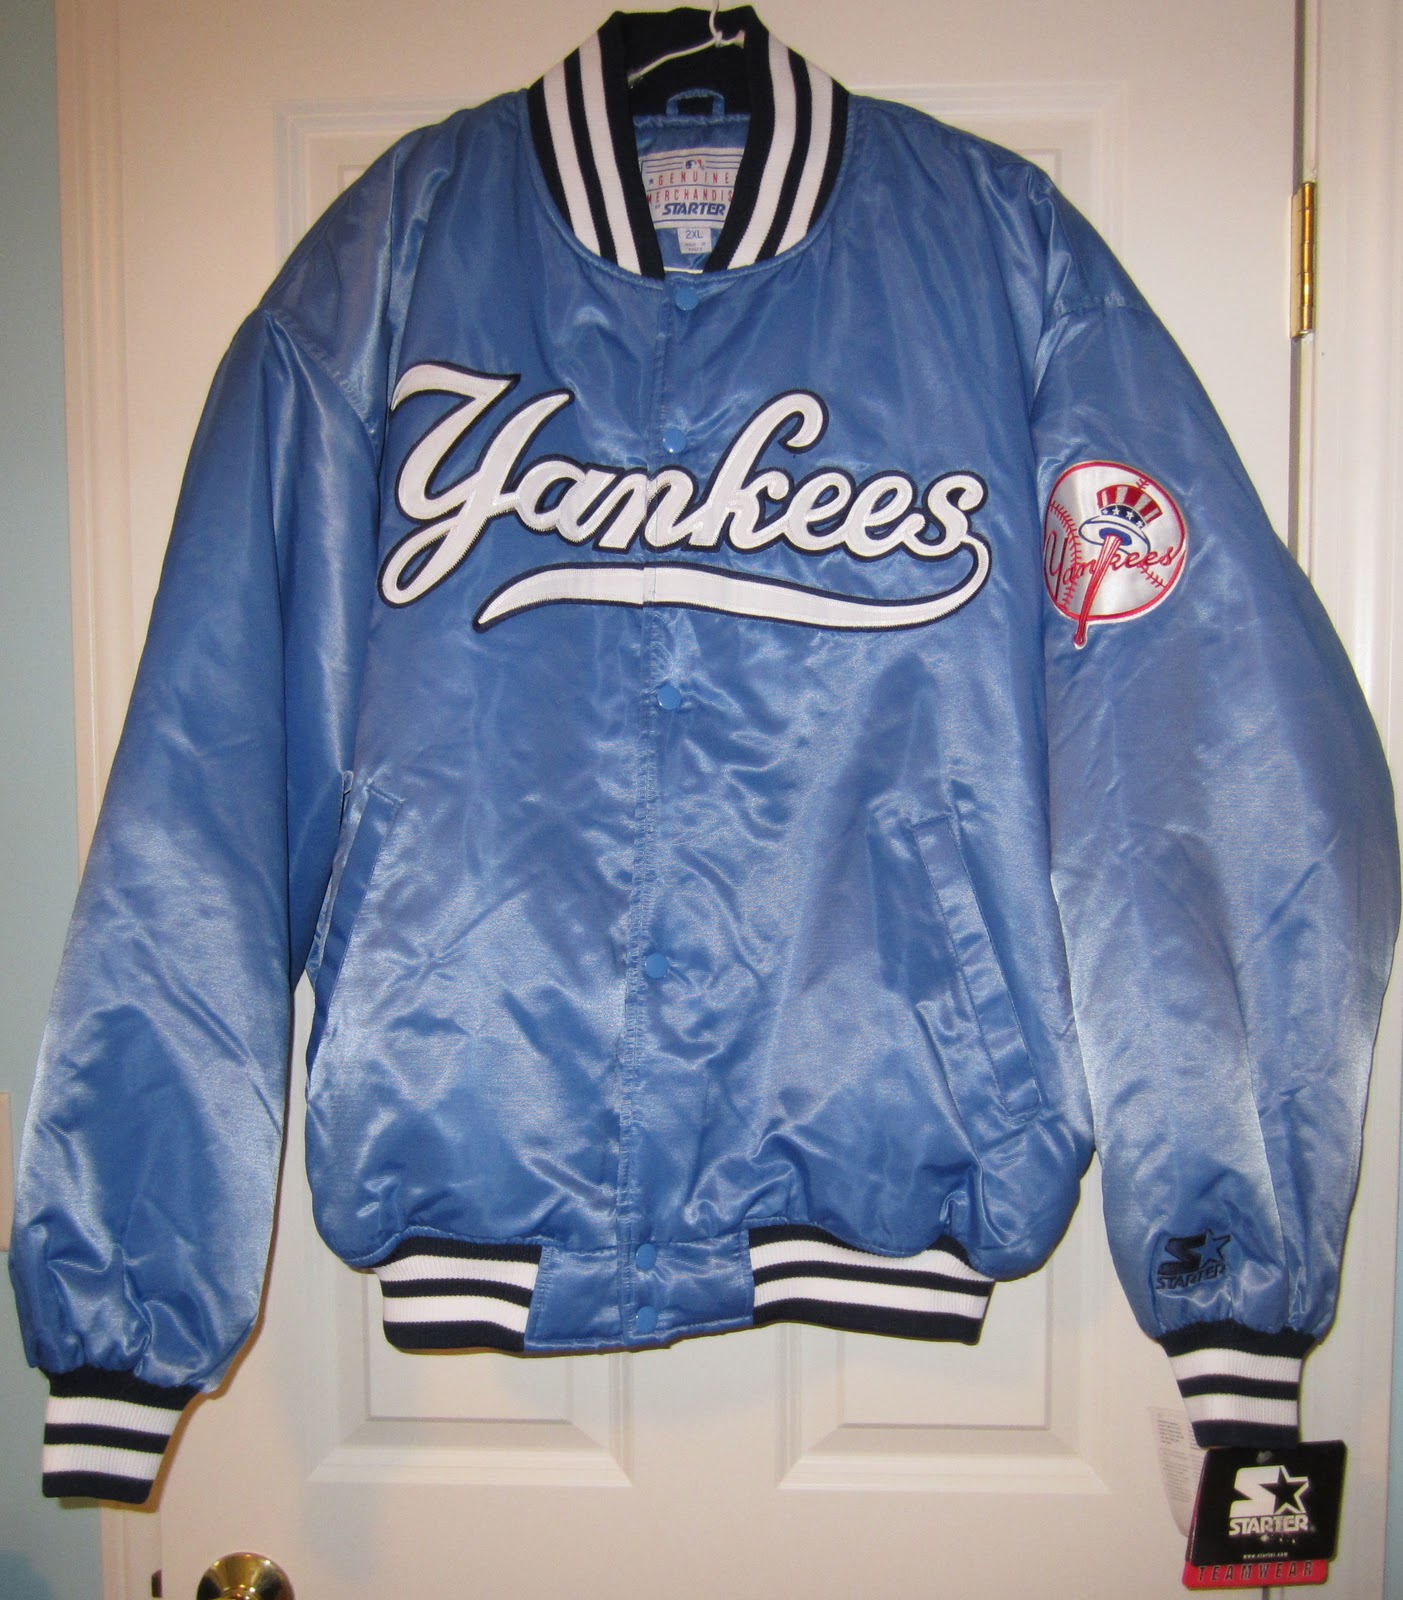 Vintage Sports Apparel: VIntage New York Yankees Starter ...